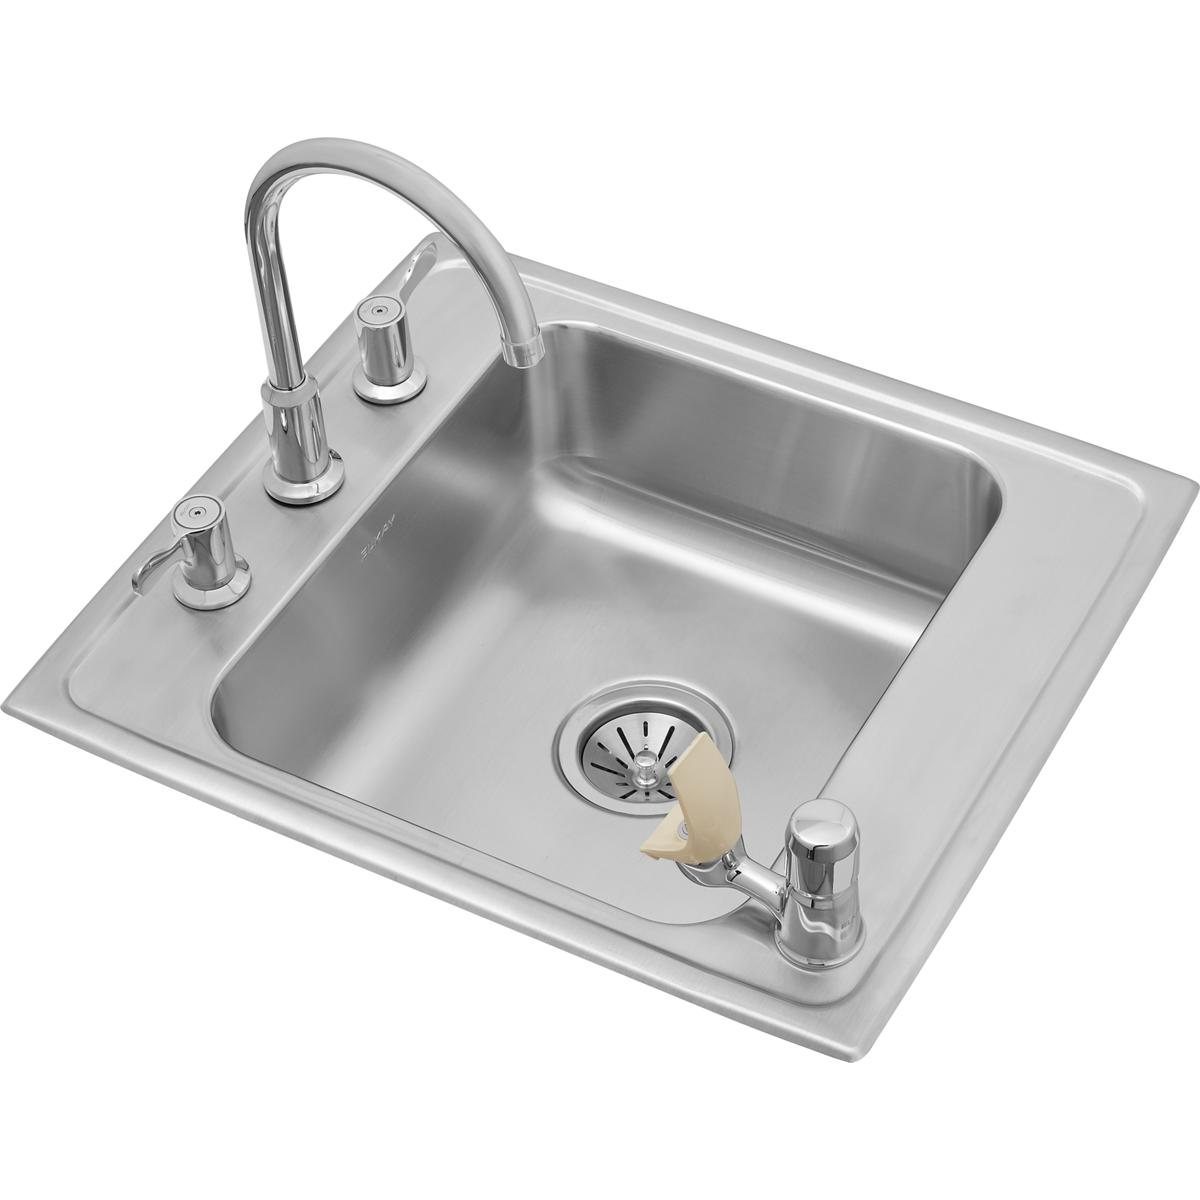 "Elkay Lustertone Classic Stainless Steel 22"" x 19-1/2"" x 7-1/2"", Single Classroom Sink + Faucet/Bubbler Kit"